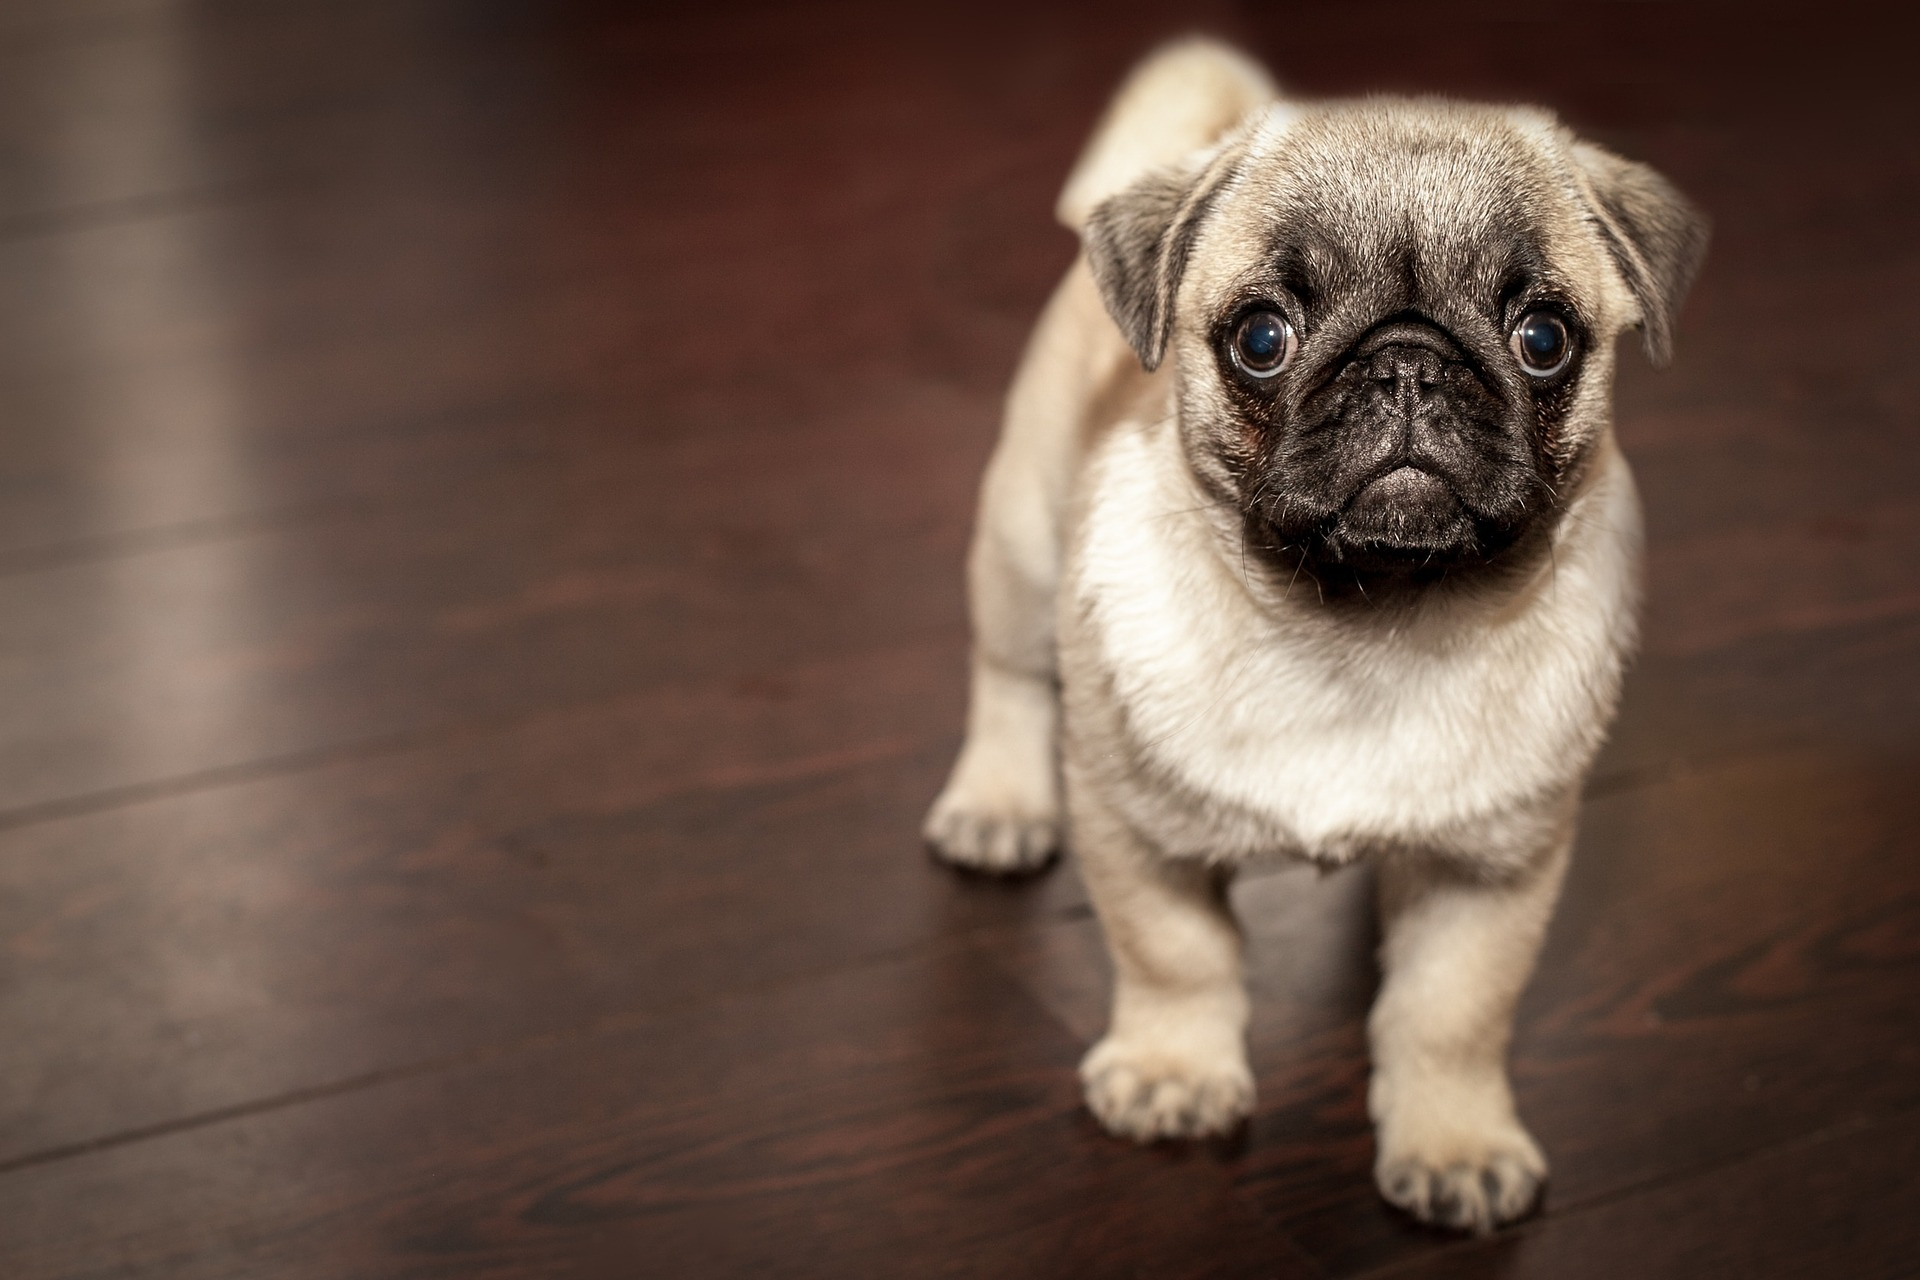 Puppy Food Advice: Puppy Food And How Much To Feed A Puppy 5